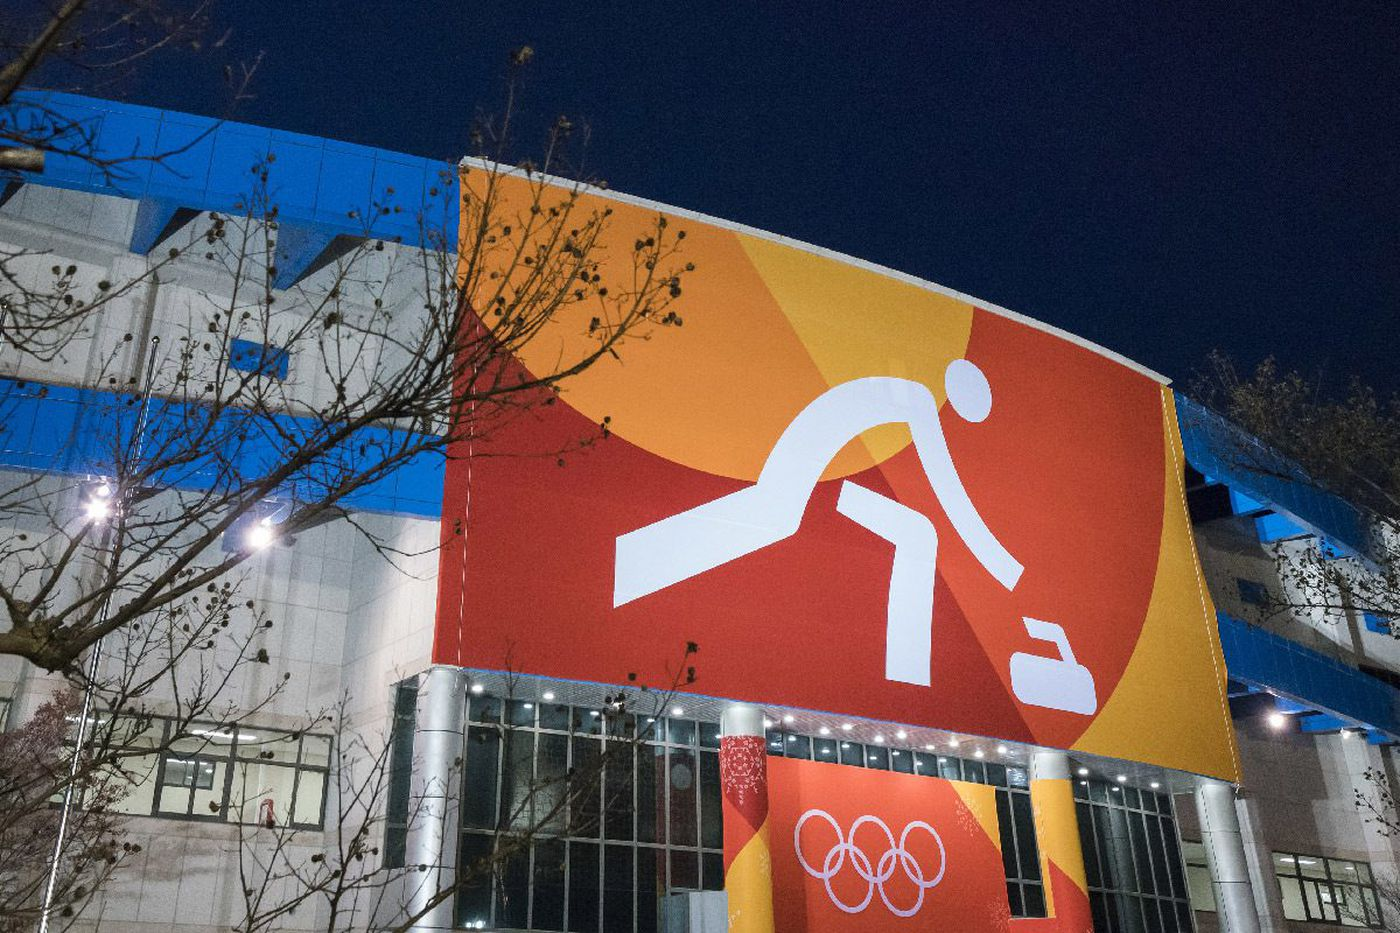 When do the 2018 Winter Olympics start (and end)?